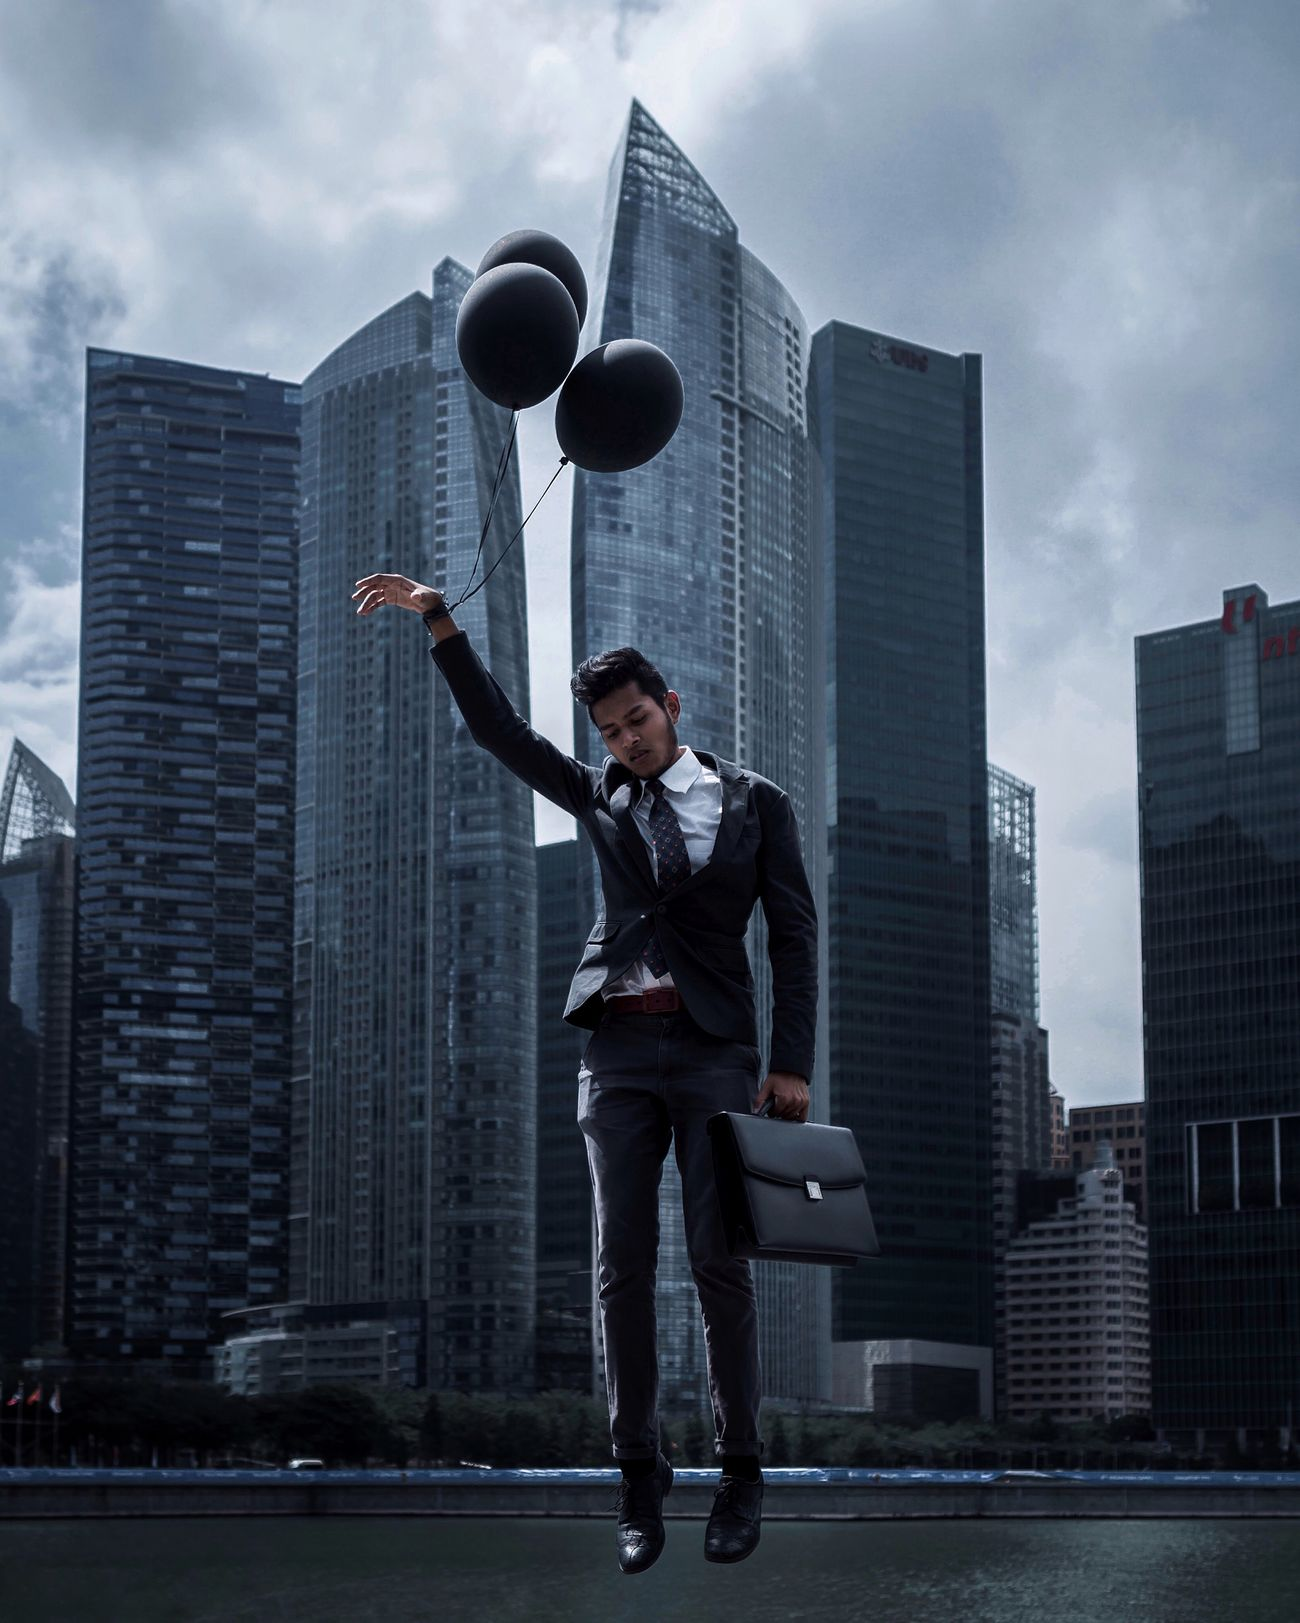 Escapism Serenity Outdoors Cloudy Cityscapes Cityscape City Emotions Escapism Escape Reality Moody Balloons Portrait